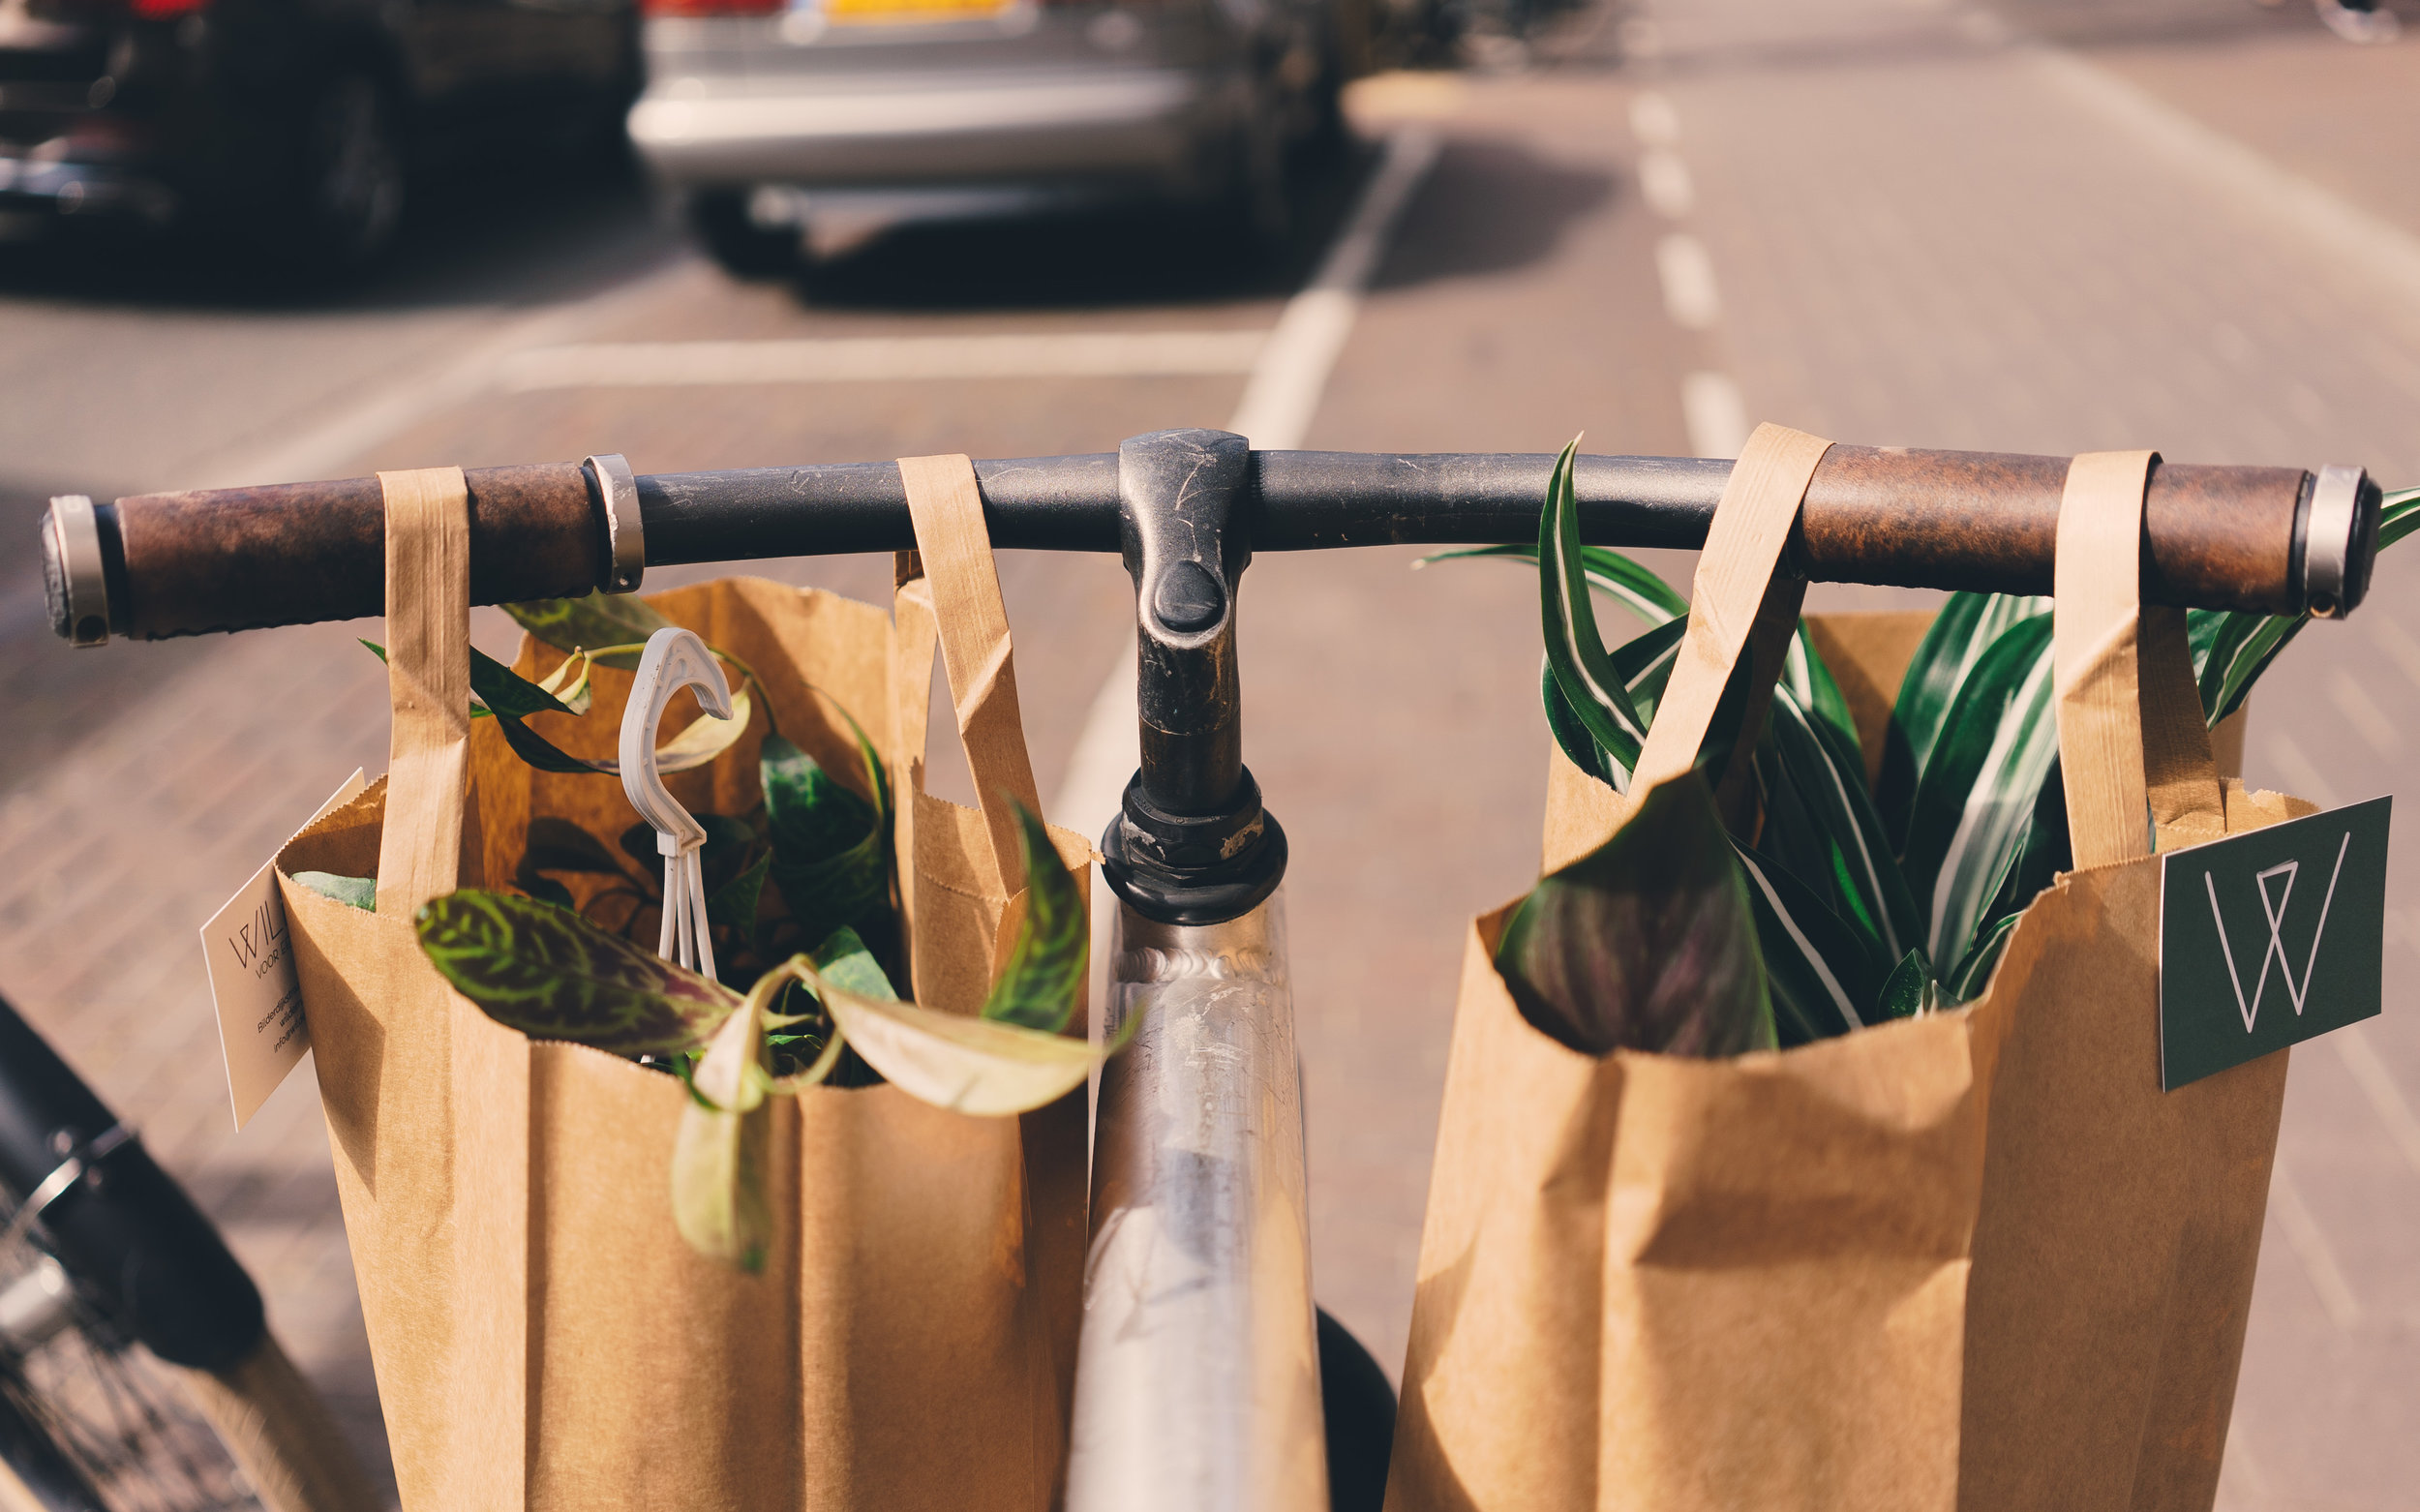 Paper bags are actually more carbon intensive than single use plastic bags. Cotton bags are even worse.